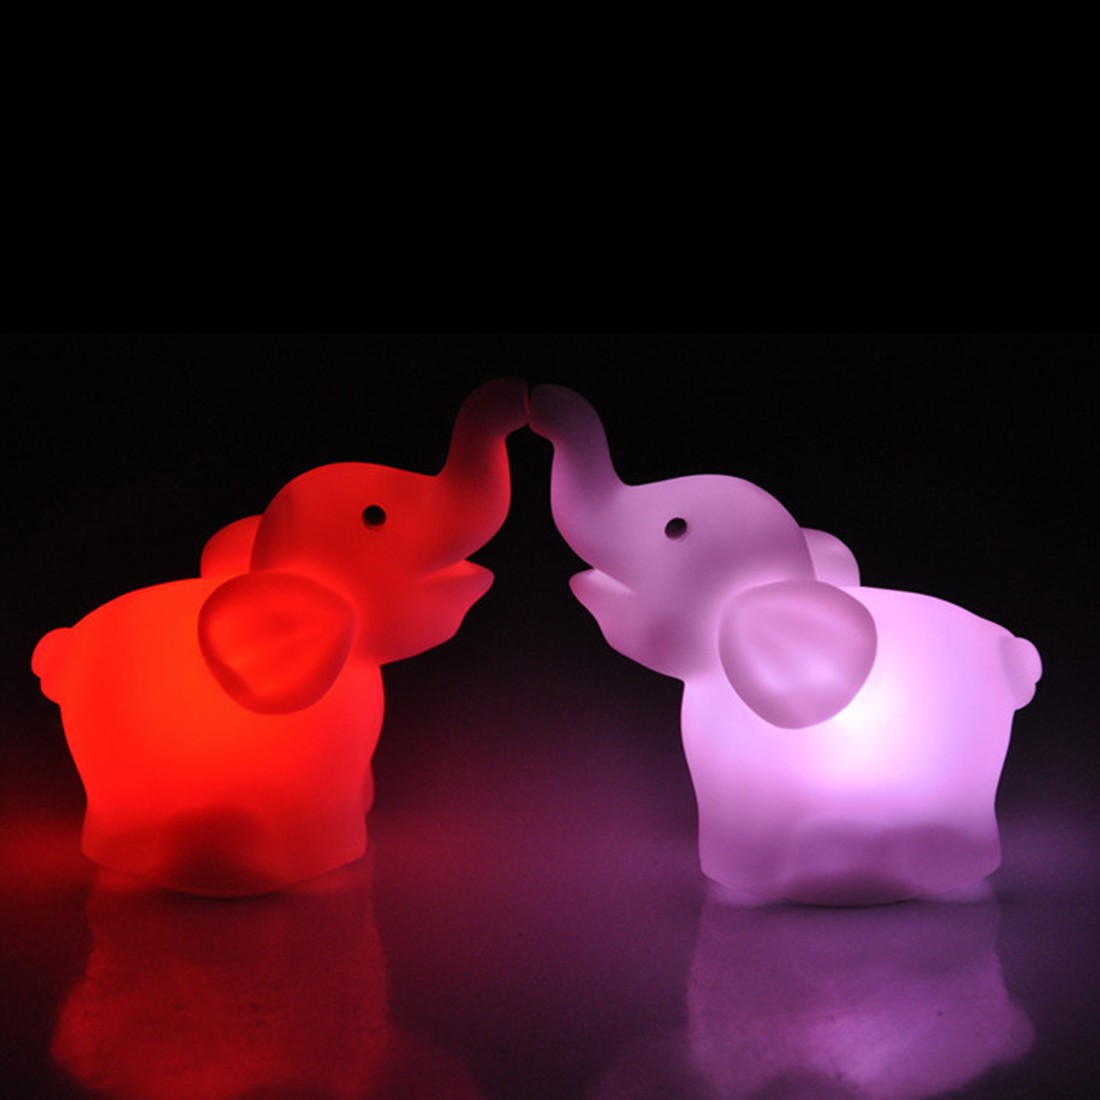 7 Color Changing Cute Elephant Shape LED Night Light Lamp Wedding Party Decor with Battery7 Color Changing Cute Elephant Shape LED Night Light Lamp Wedding Party Decor with Battery